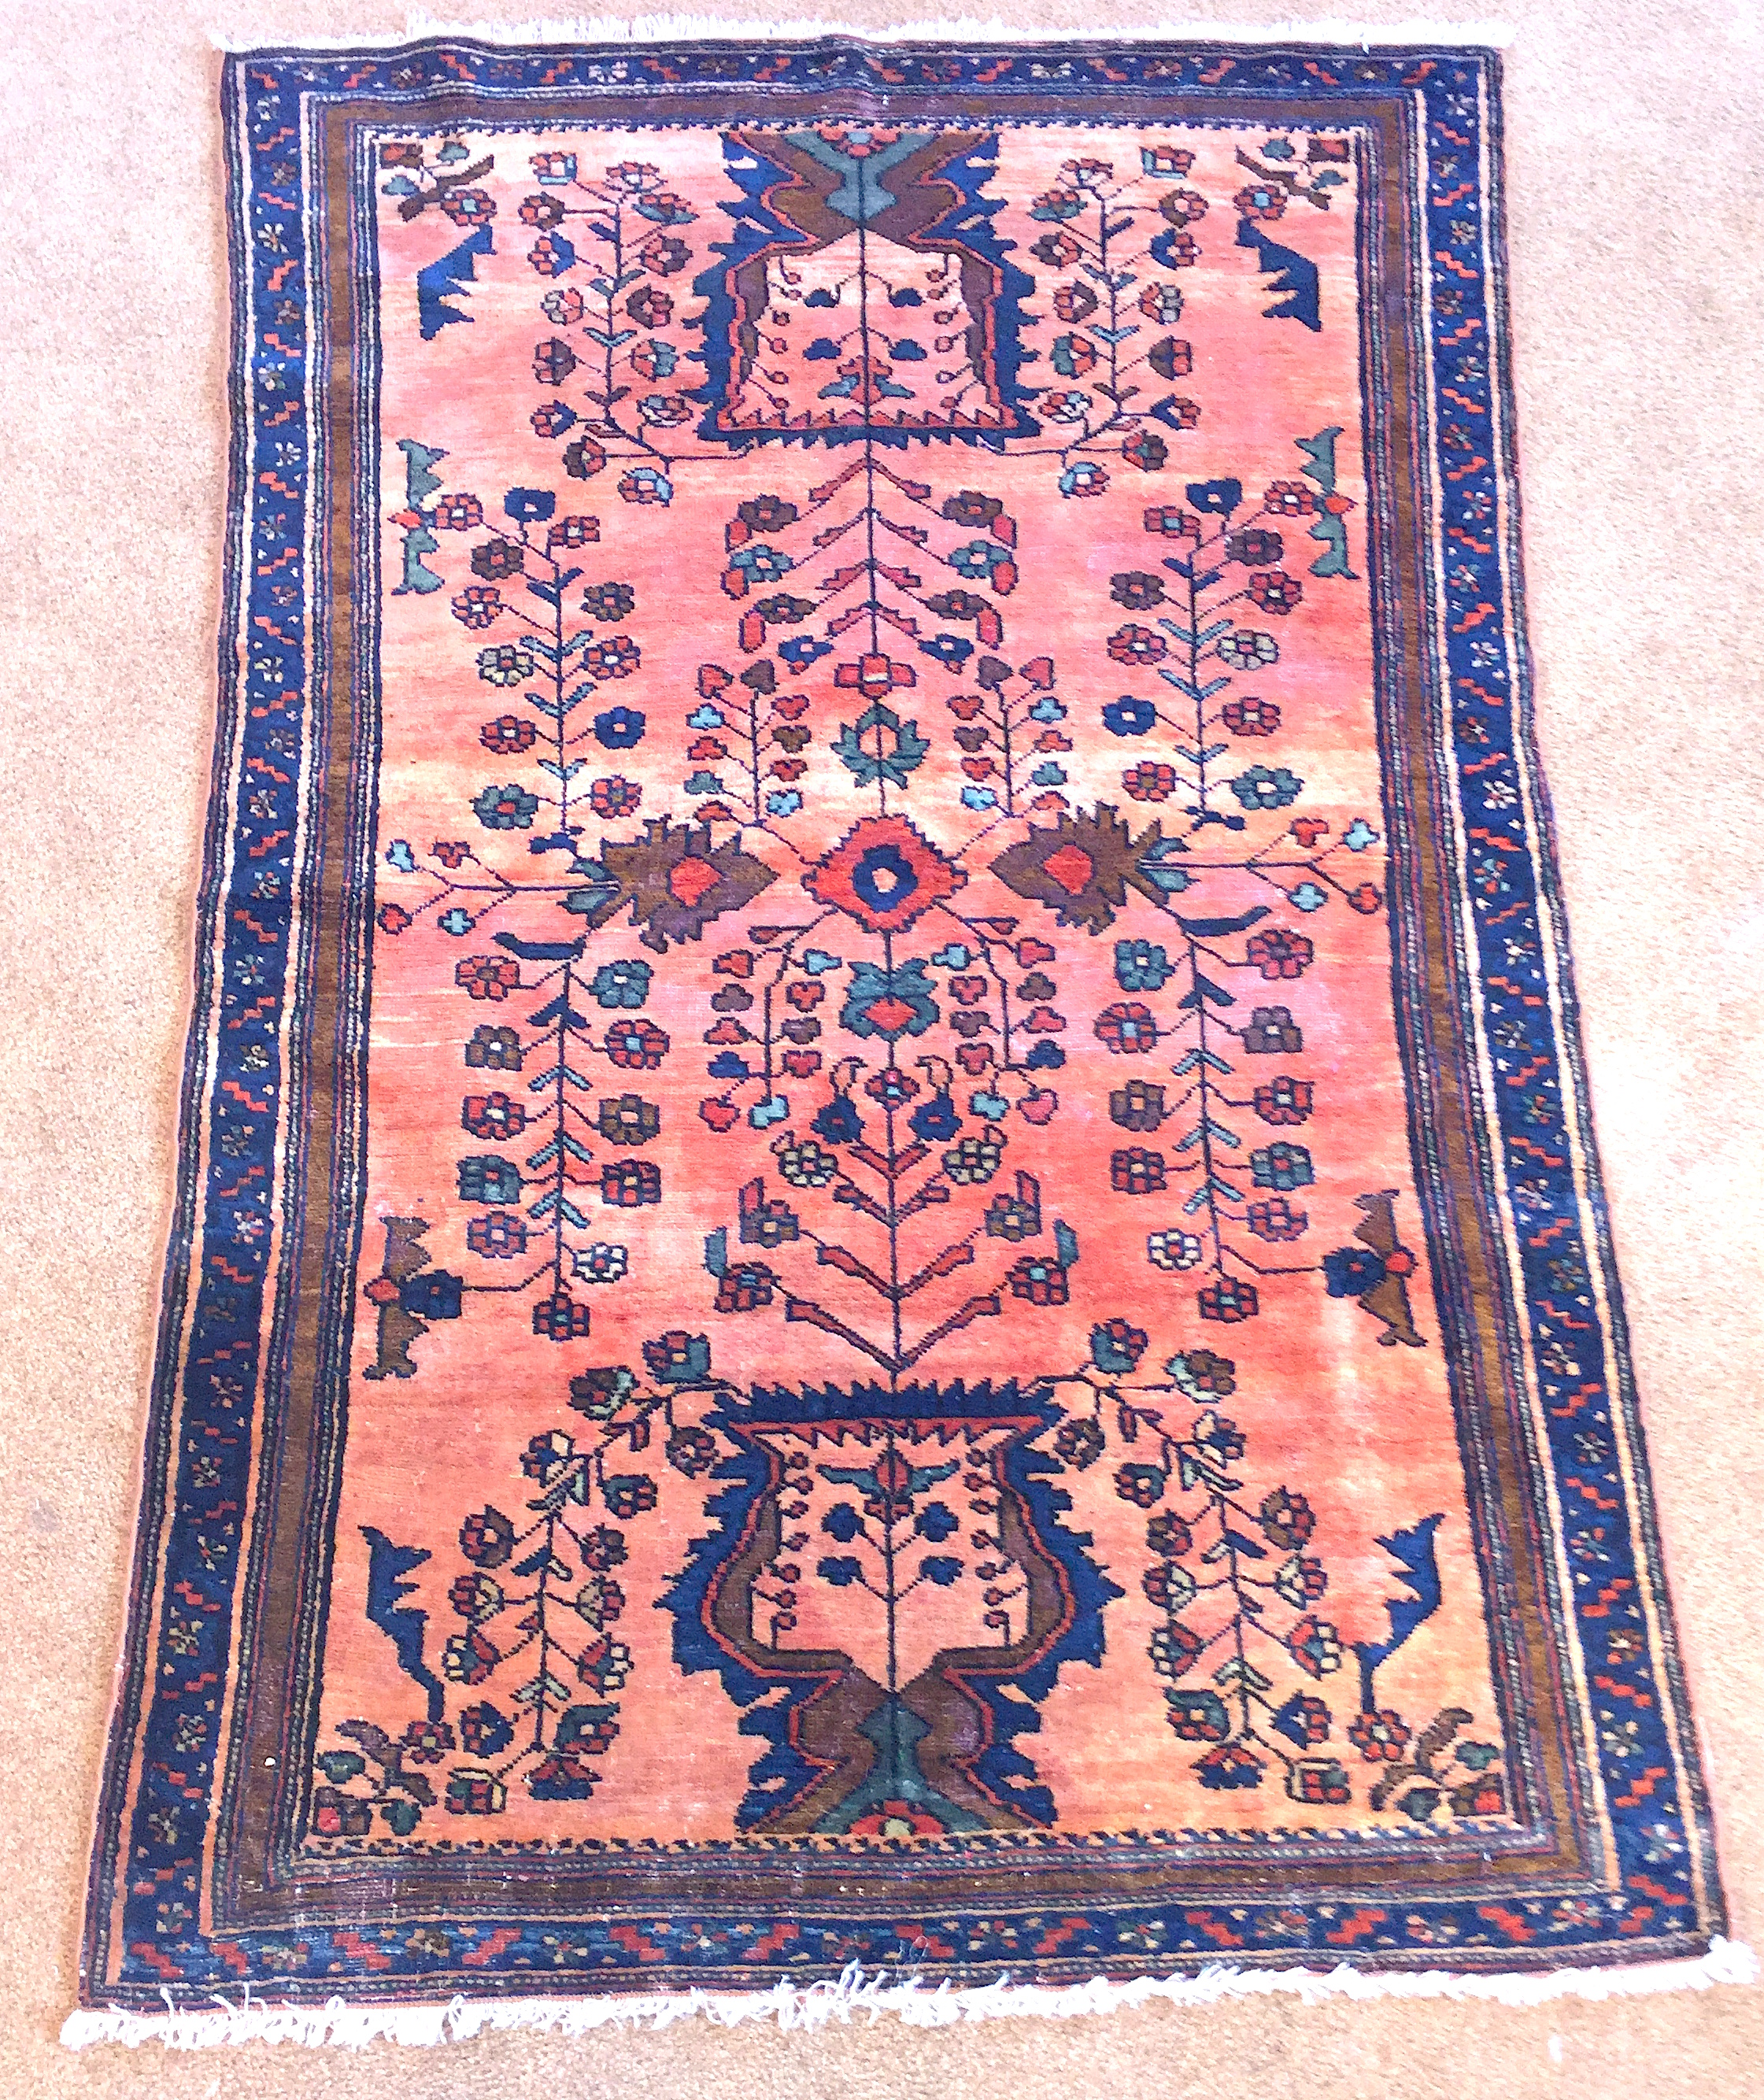 ... Look No Further Than The Vegetable Dyeing Experts At Oriental Rug Care  NY. Our Highest Priority Is Your Total And Complete Satisfaction.